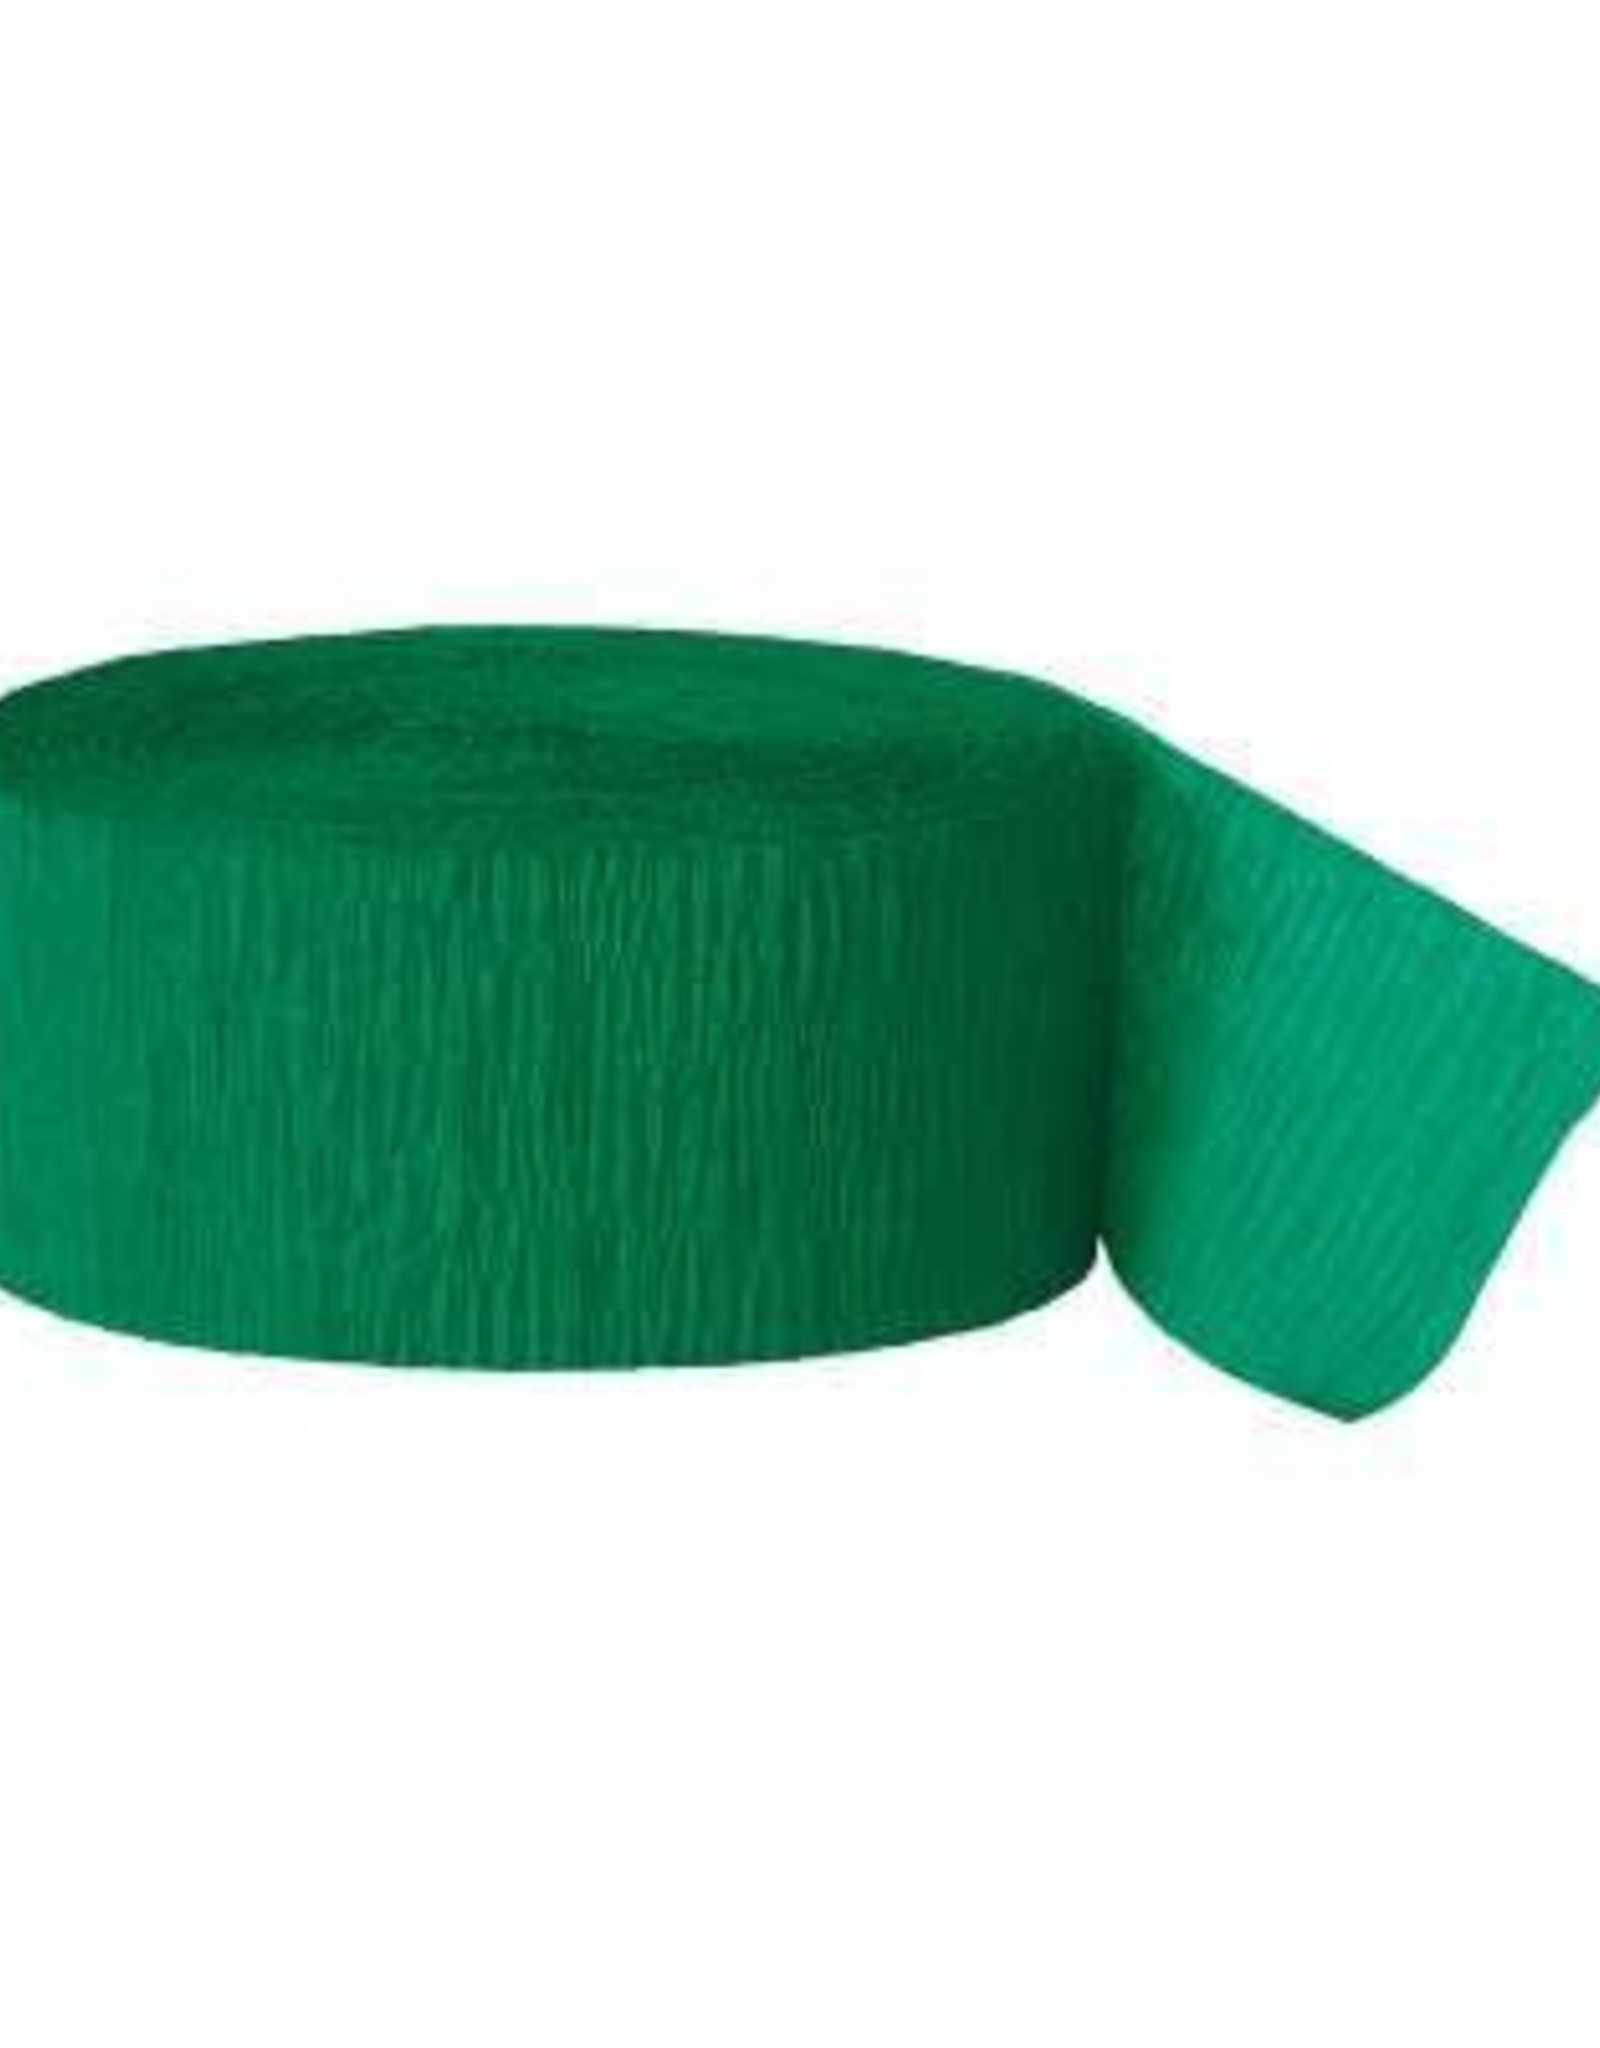 Emerald Green Streamers 81FT